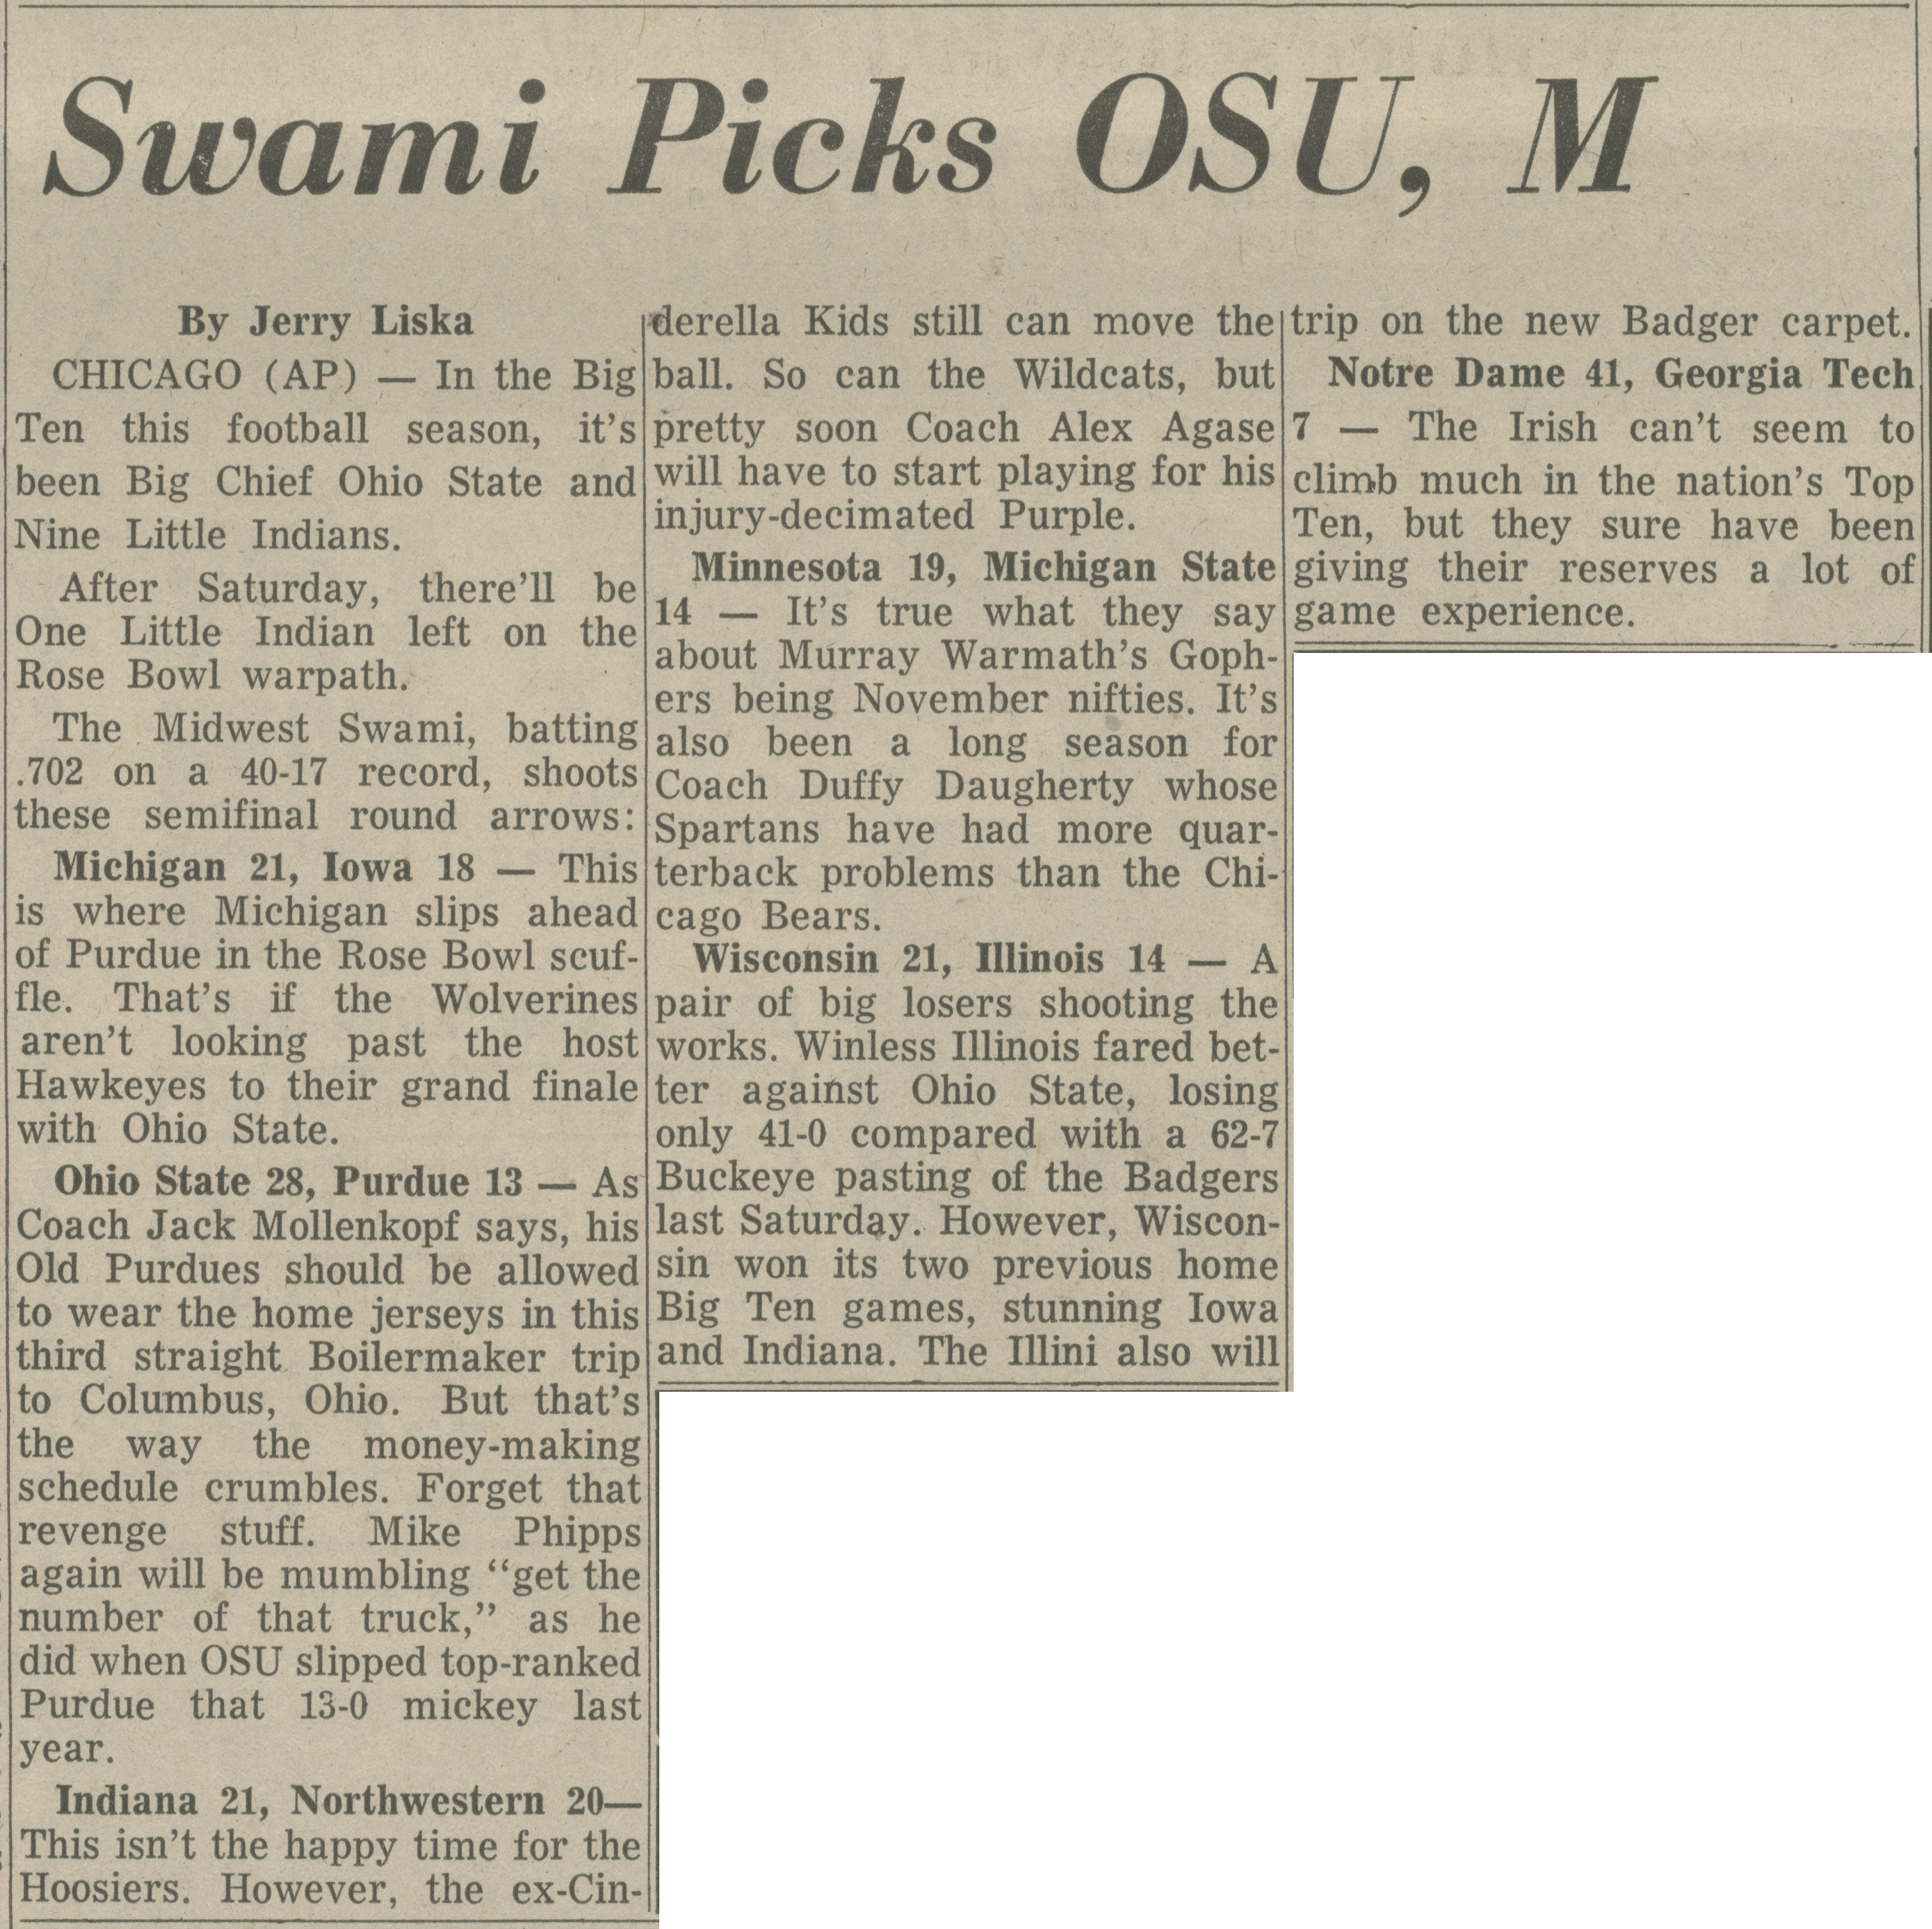 Swami Picks OSU, M image